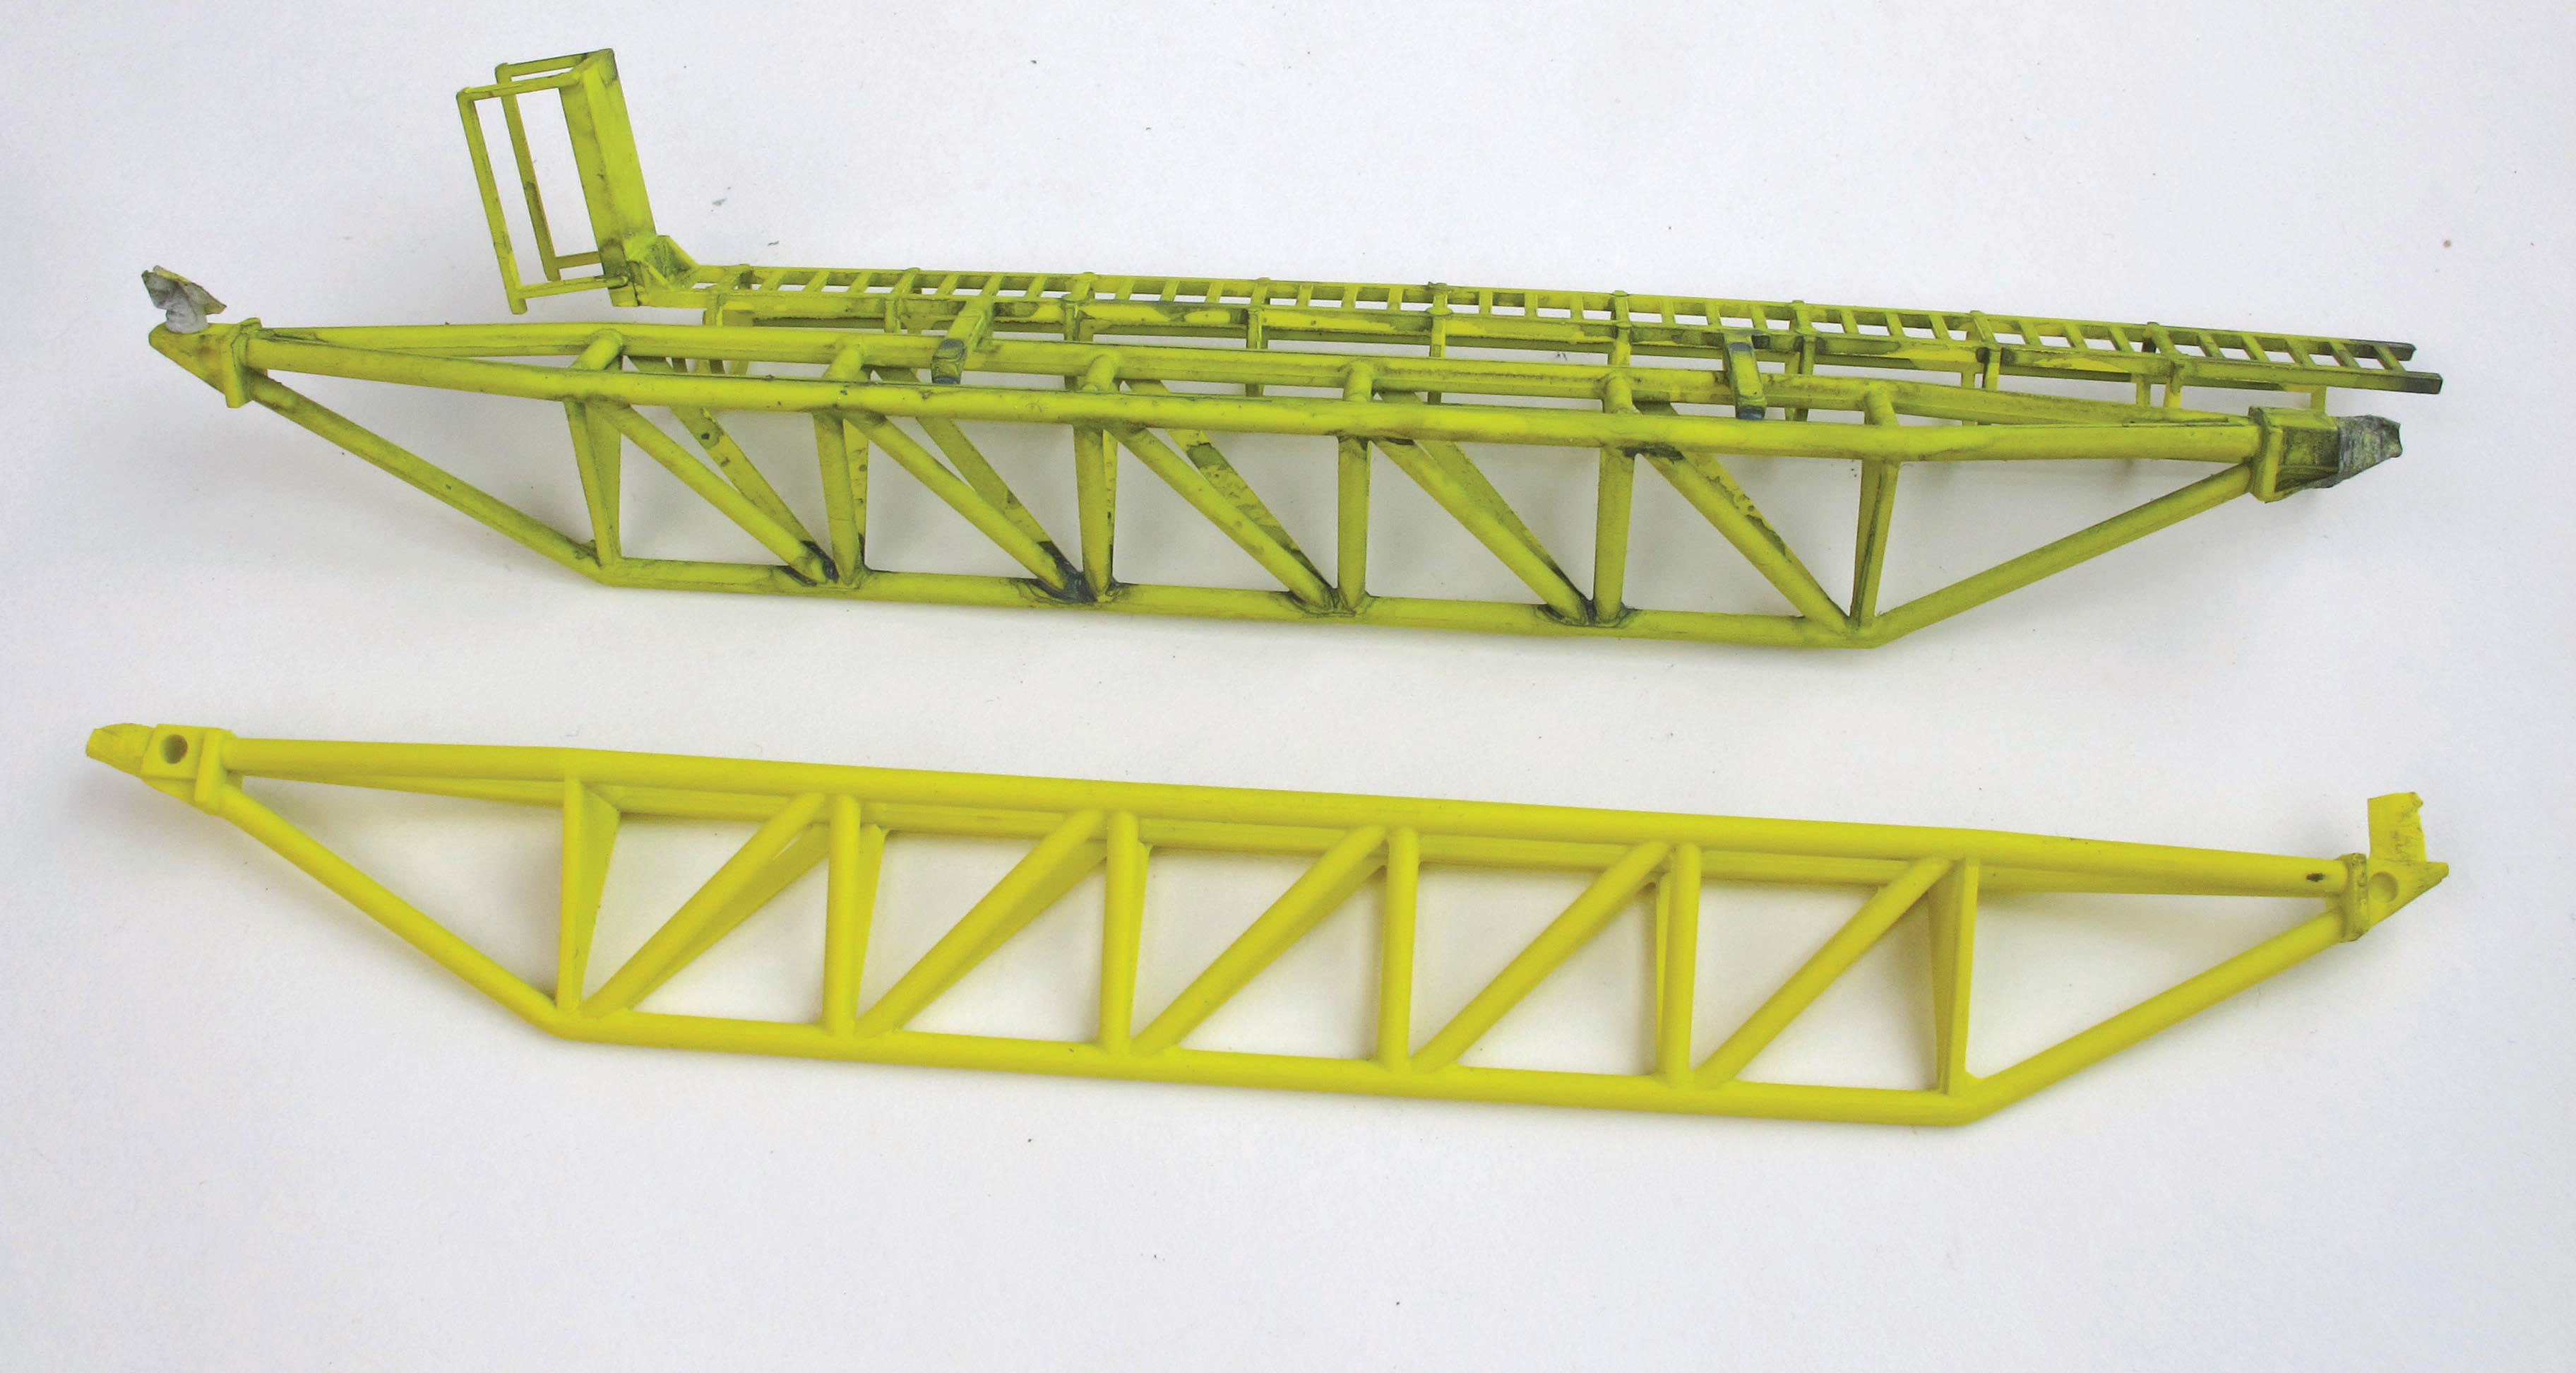 How to build a Gantry Crane